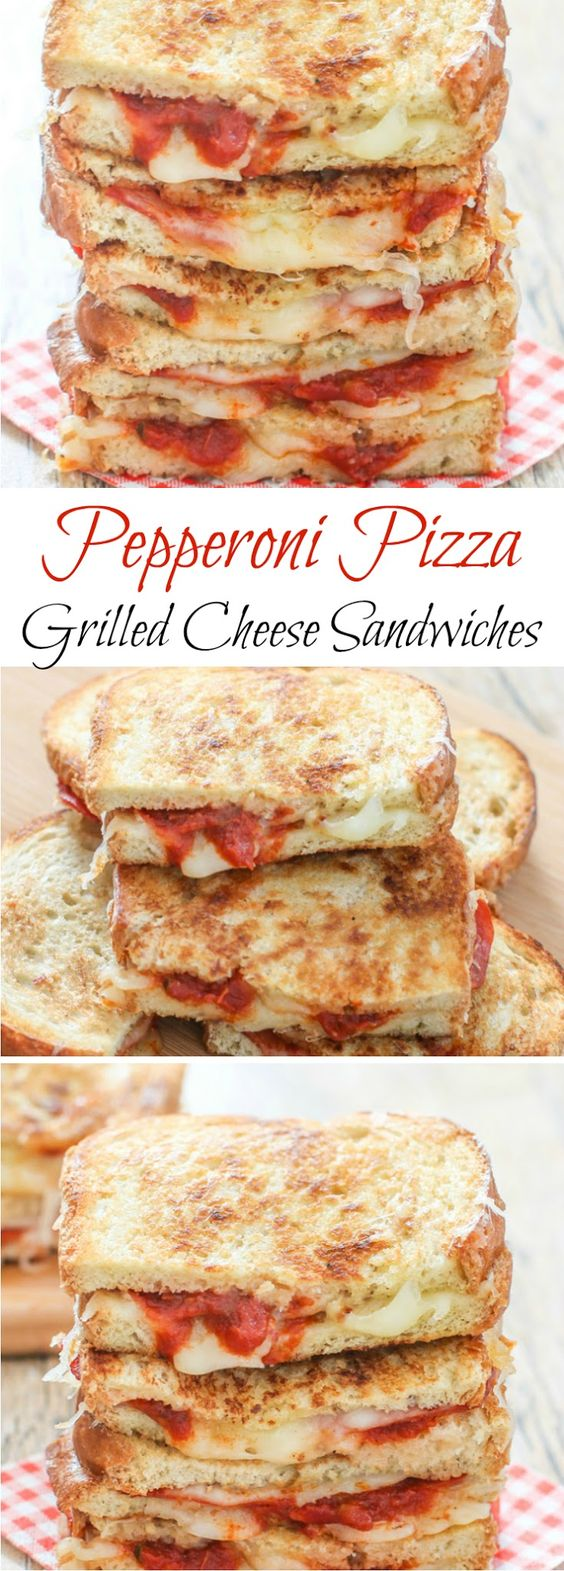 ★★★★☆ 691 ratings      | PIZZA GRILLED CHEESE SANDWICH #PIZZA #GRILLED #CHEESE #SANDWICH #YUMMY